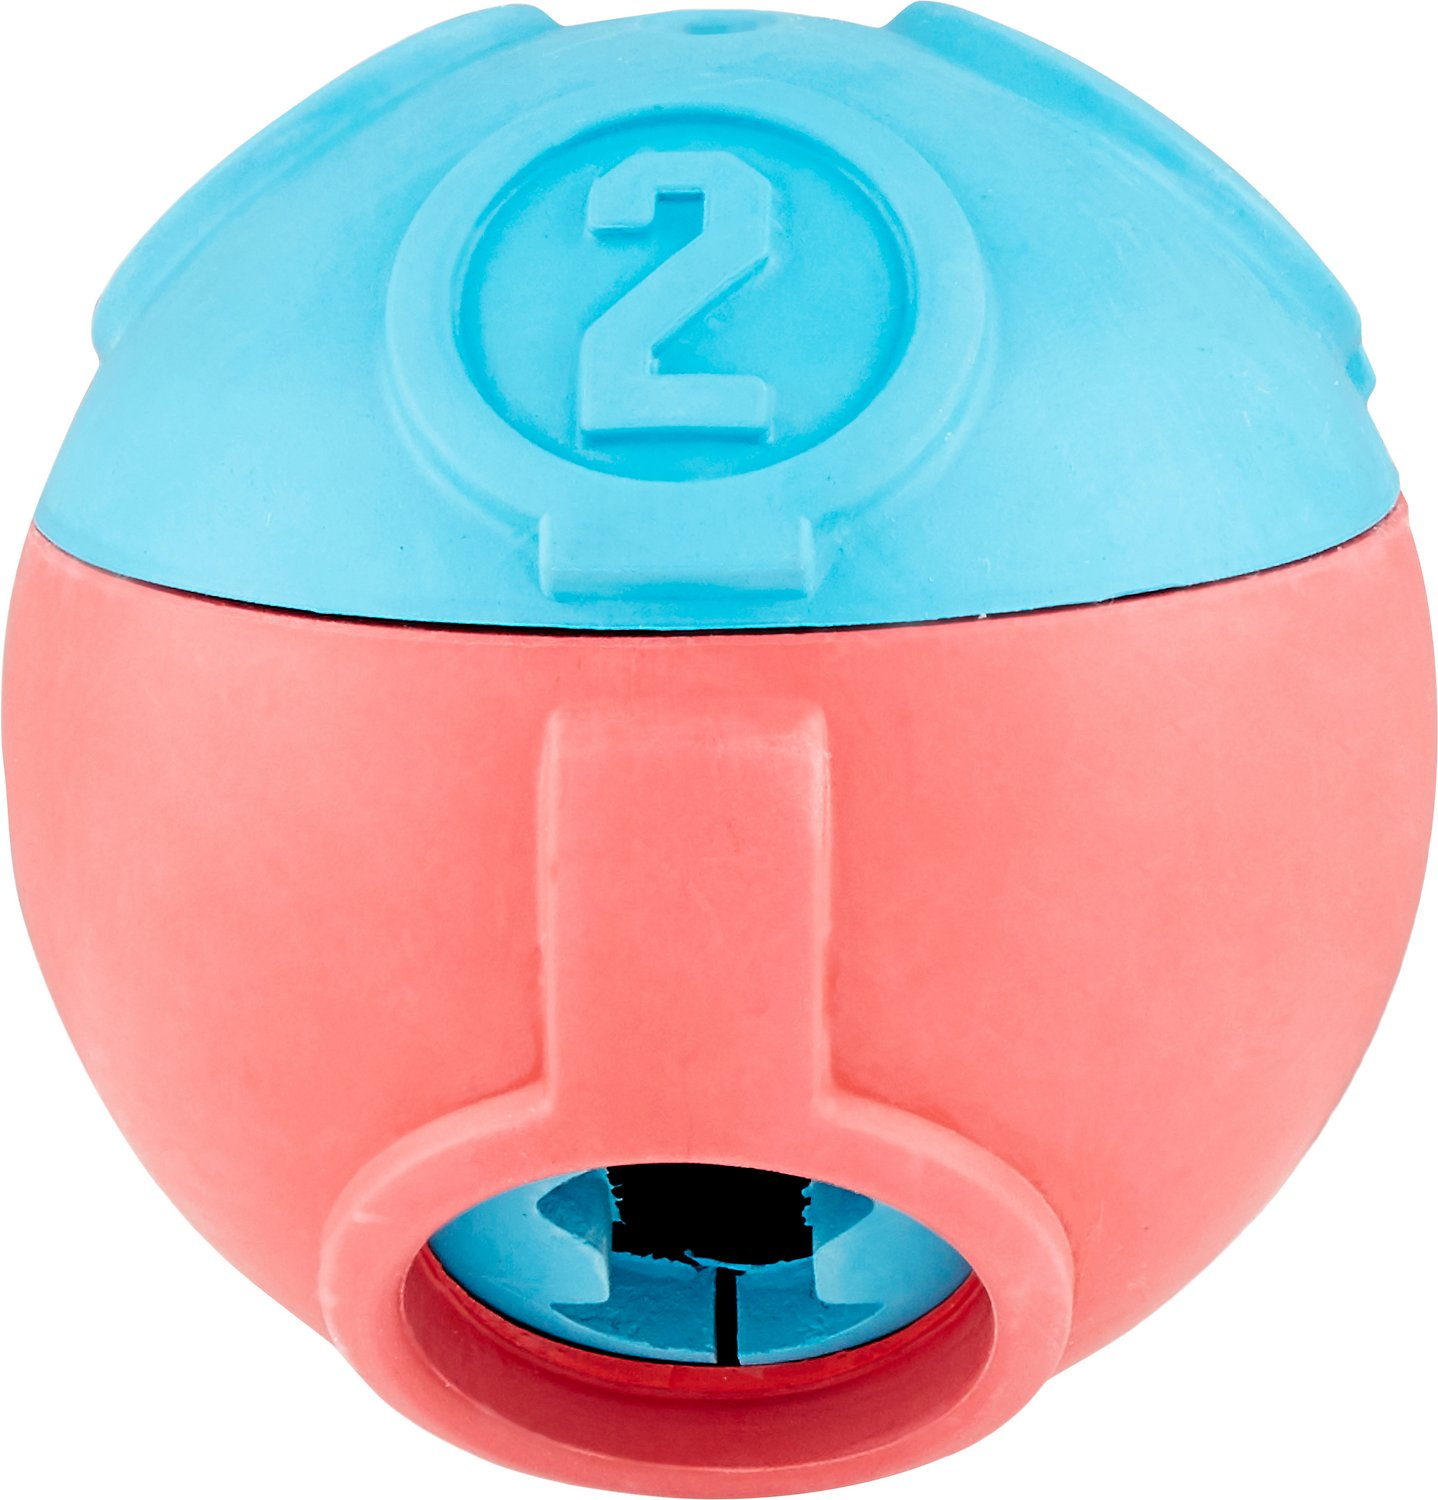 Pet Stages Challenge Ball - Made with 100% natural rubber that is great for occupying and challenging your dog. Made with 3 adjustable levels for increased difficulty. Great for chase and fetch, this ball is ideal for 2-in-1 play acting as a treat dispenser and ball all in one